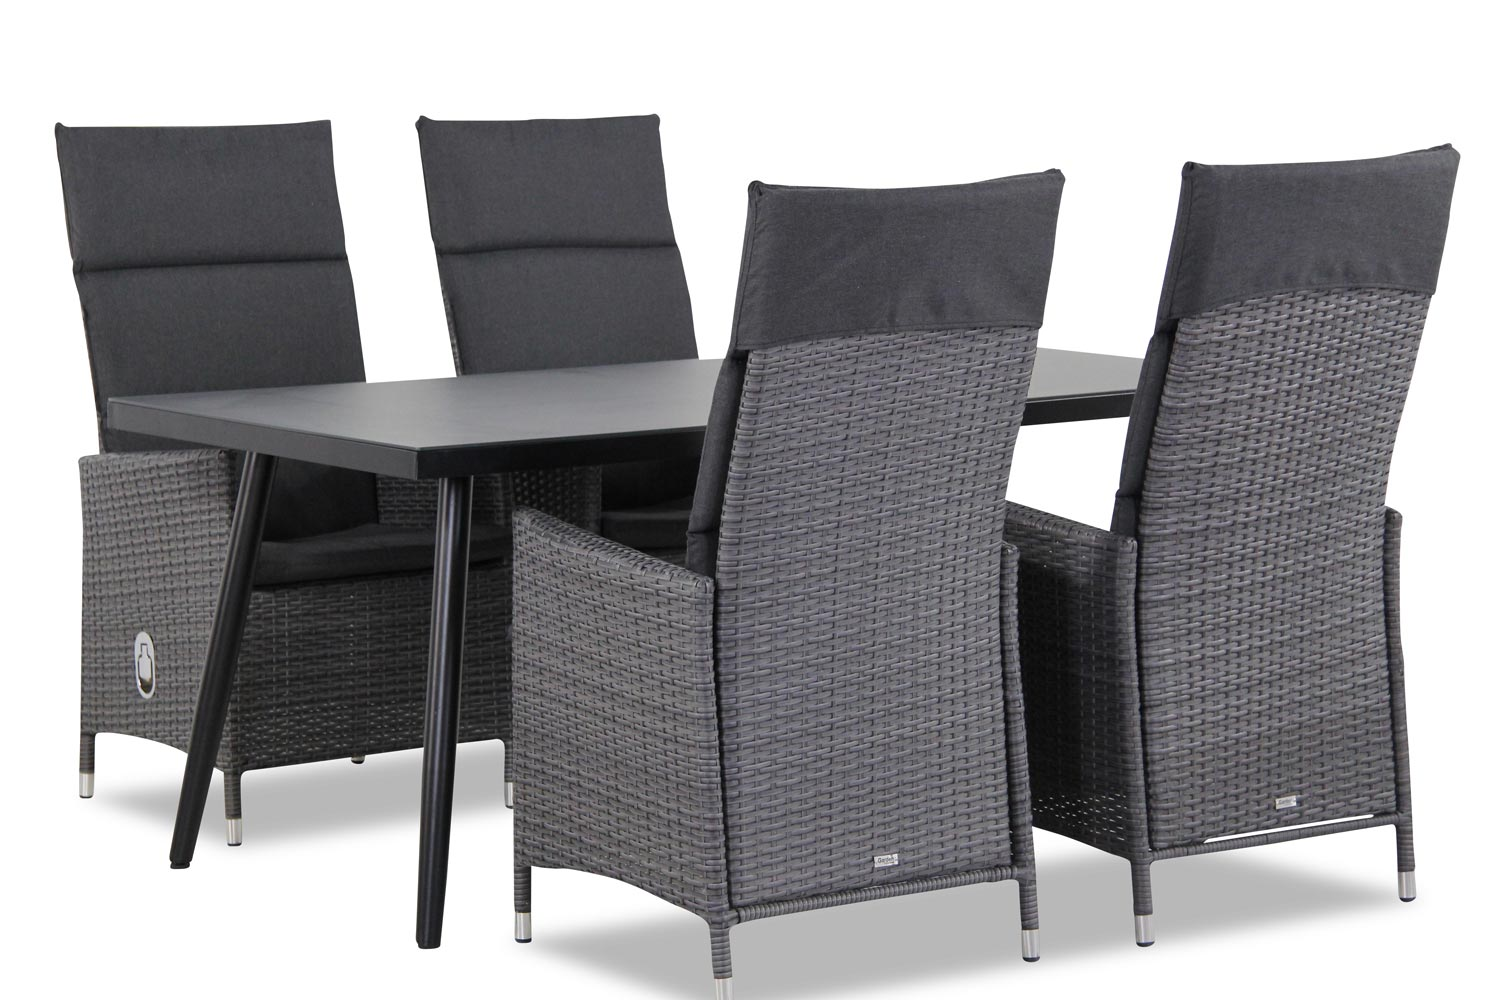 Wicker Garden Collections Denver/Cassaro 170 cm dining tuinset 5-delig